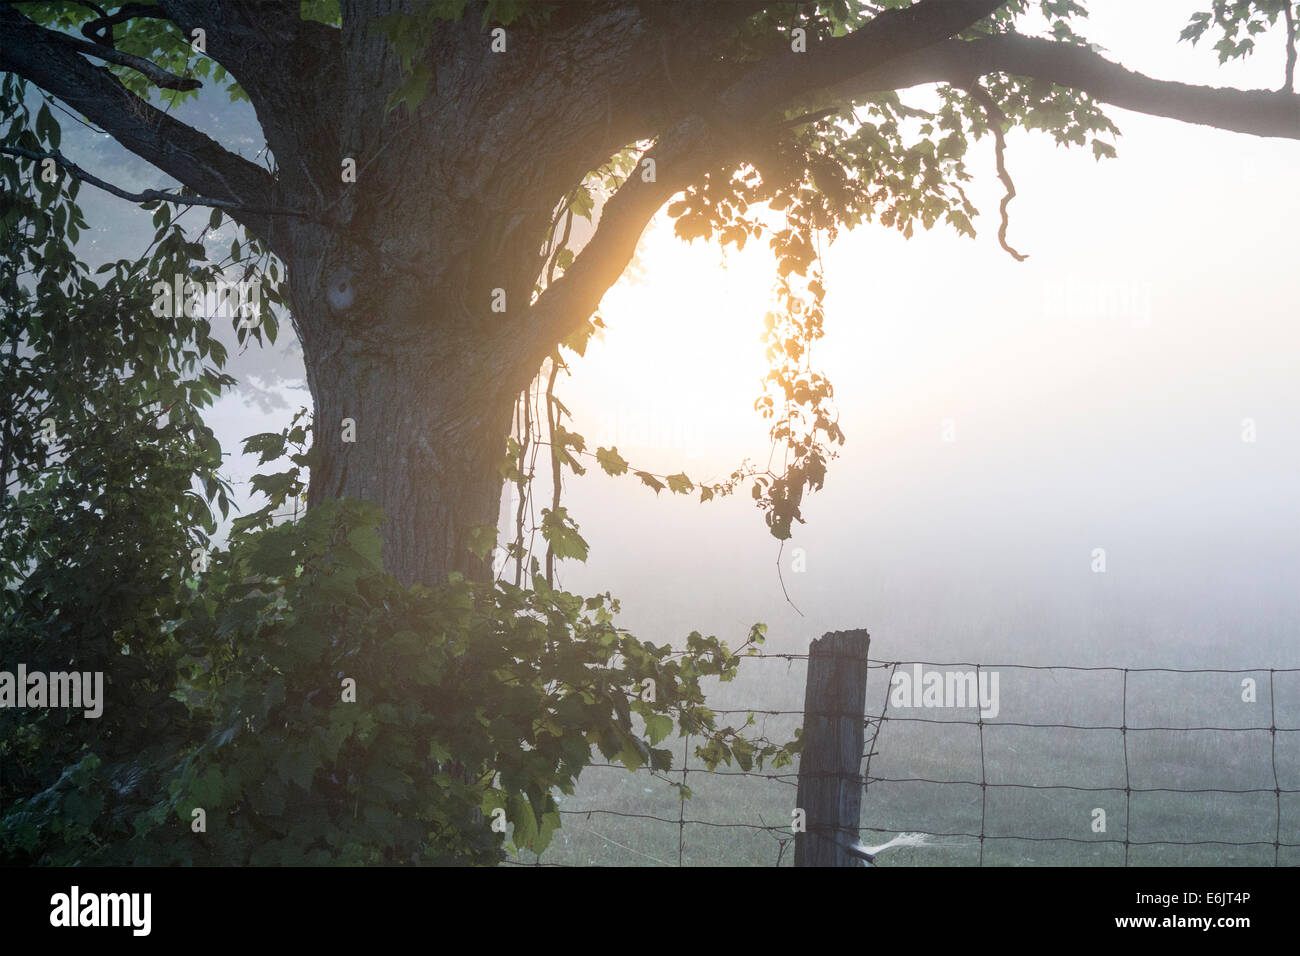 early-morning-sunrise-over-a-farm-with-t